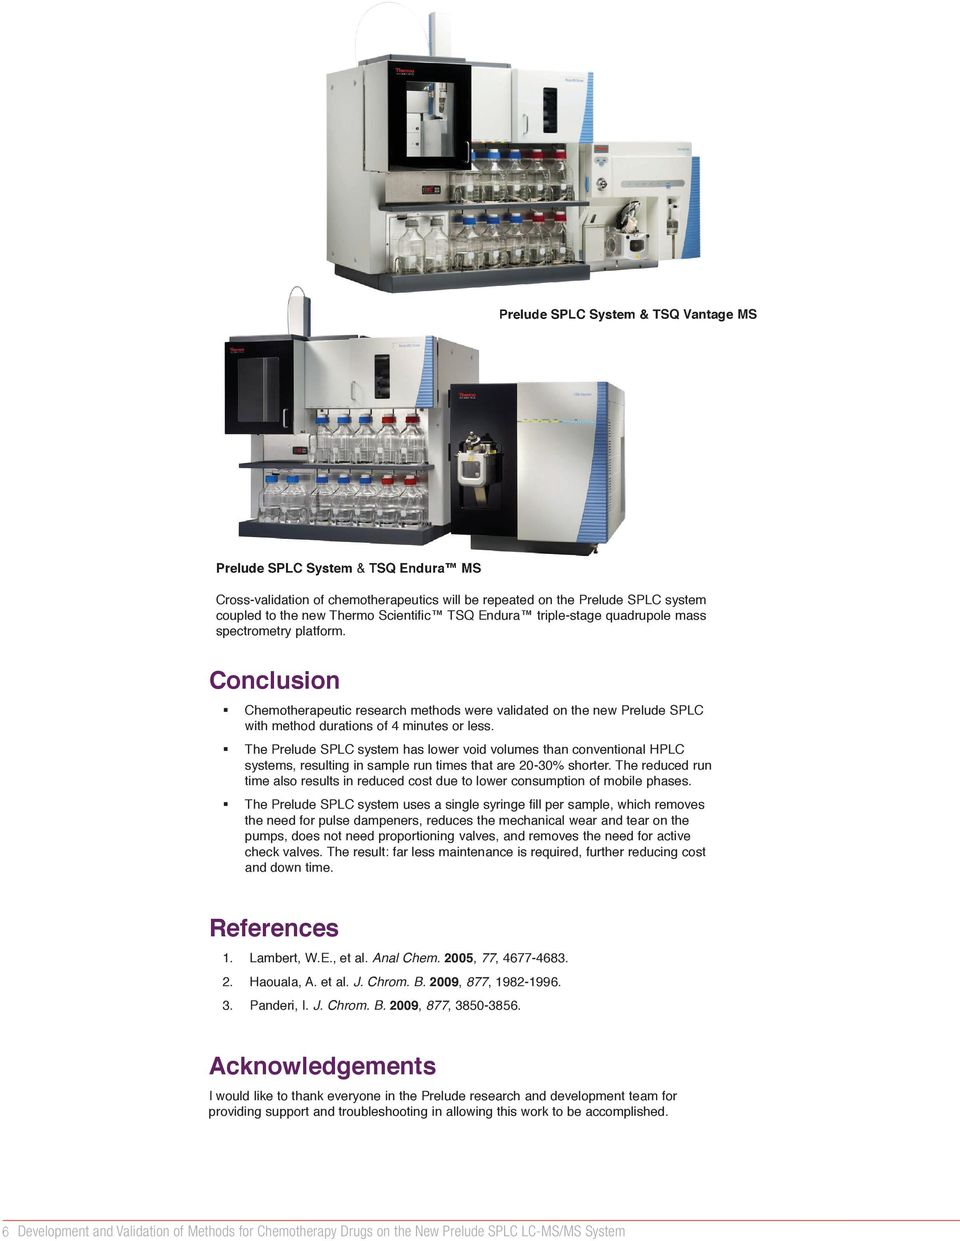 Scientific TSQ Endura triple-stage quadrupole mass spectrometry platform. 2 2 3 3 (sec) have been done previously with liquidinutes) 1-3.